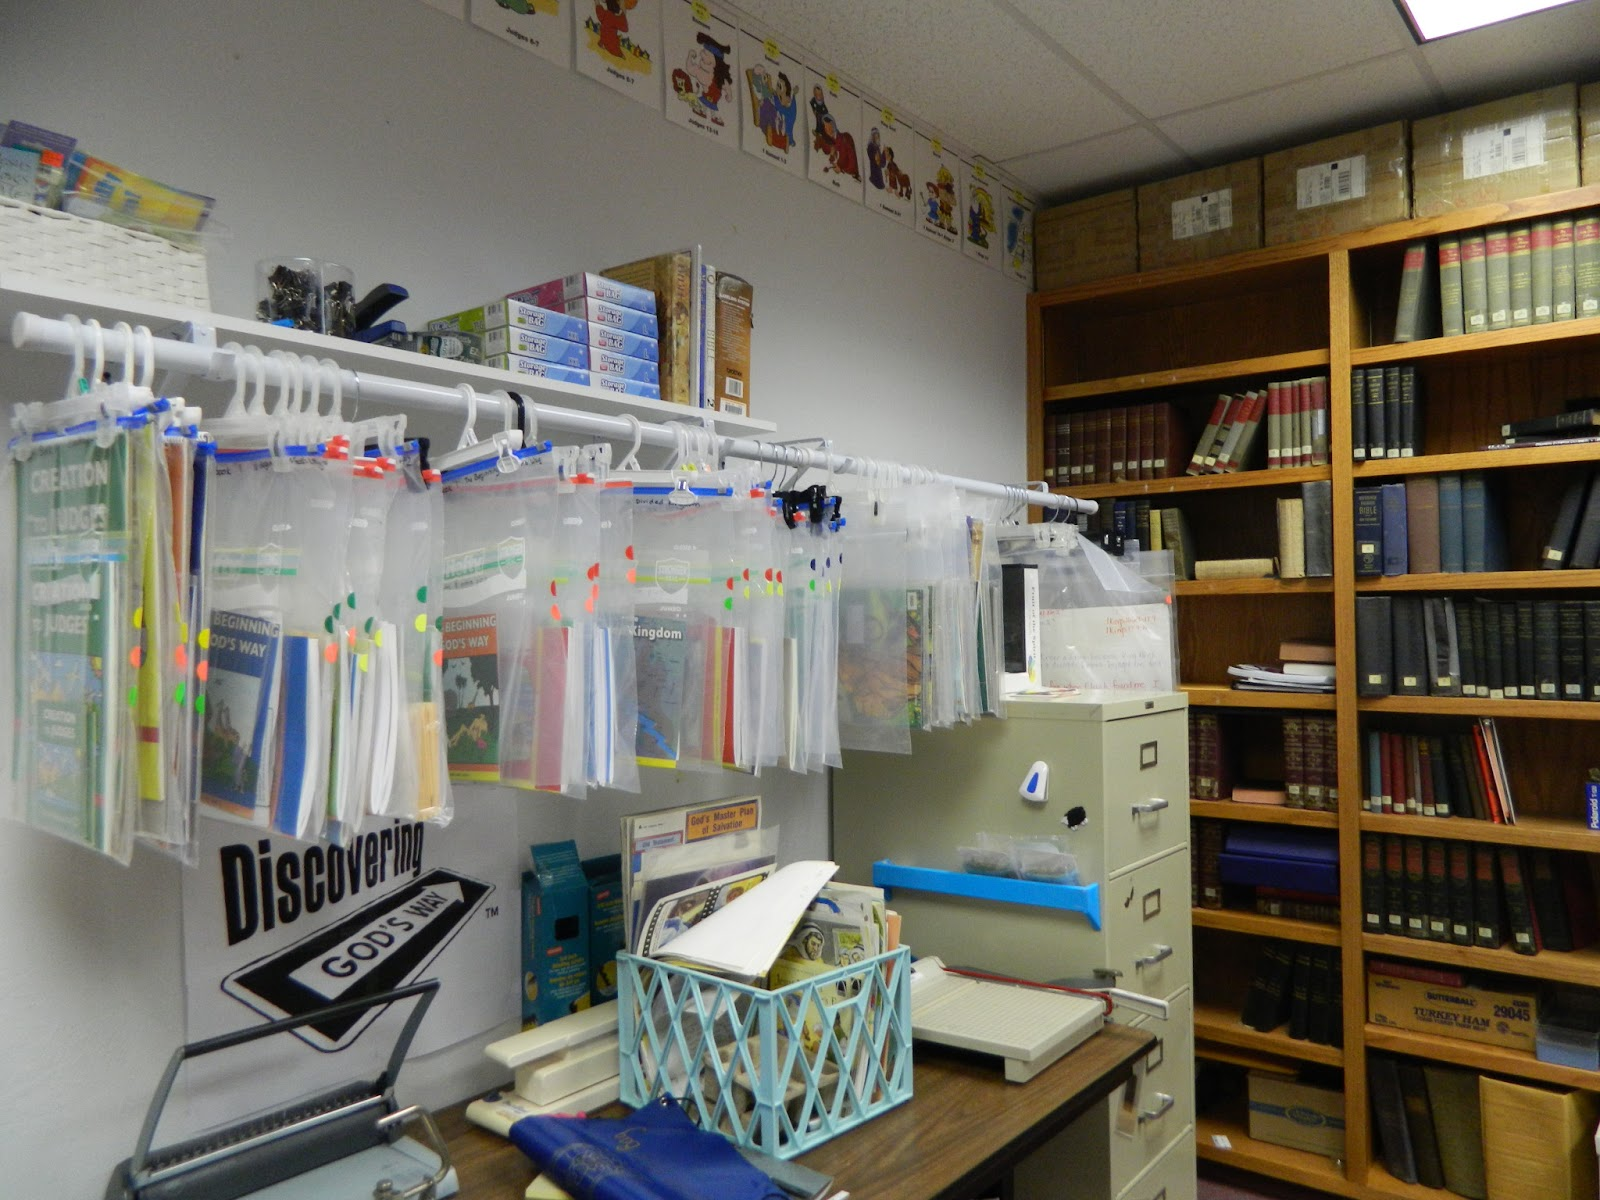 Hands On Bible Teacher: Working on the Resource Room at the Church ...